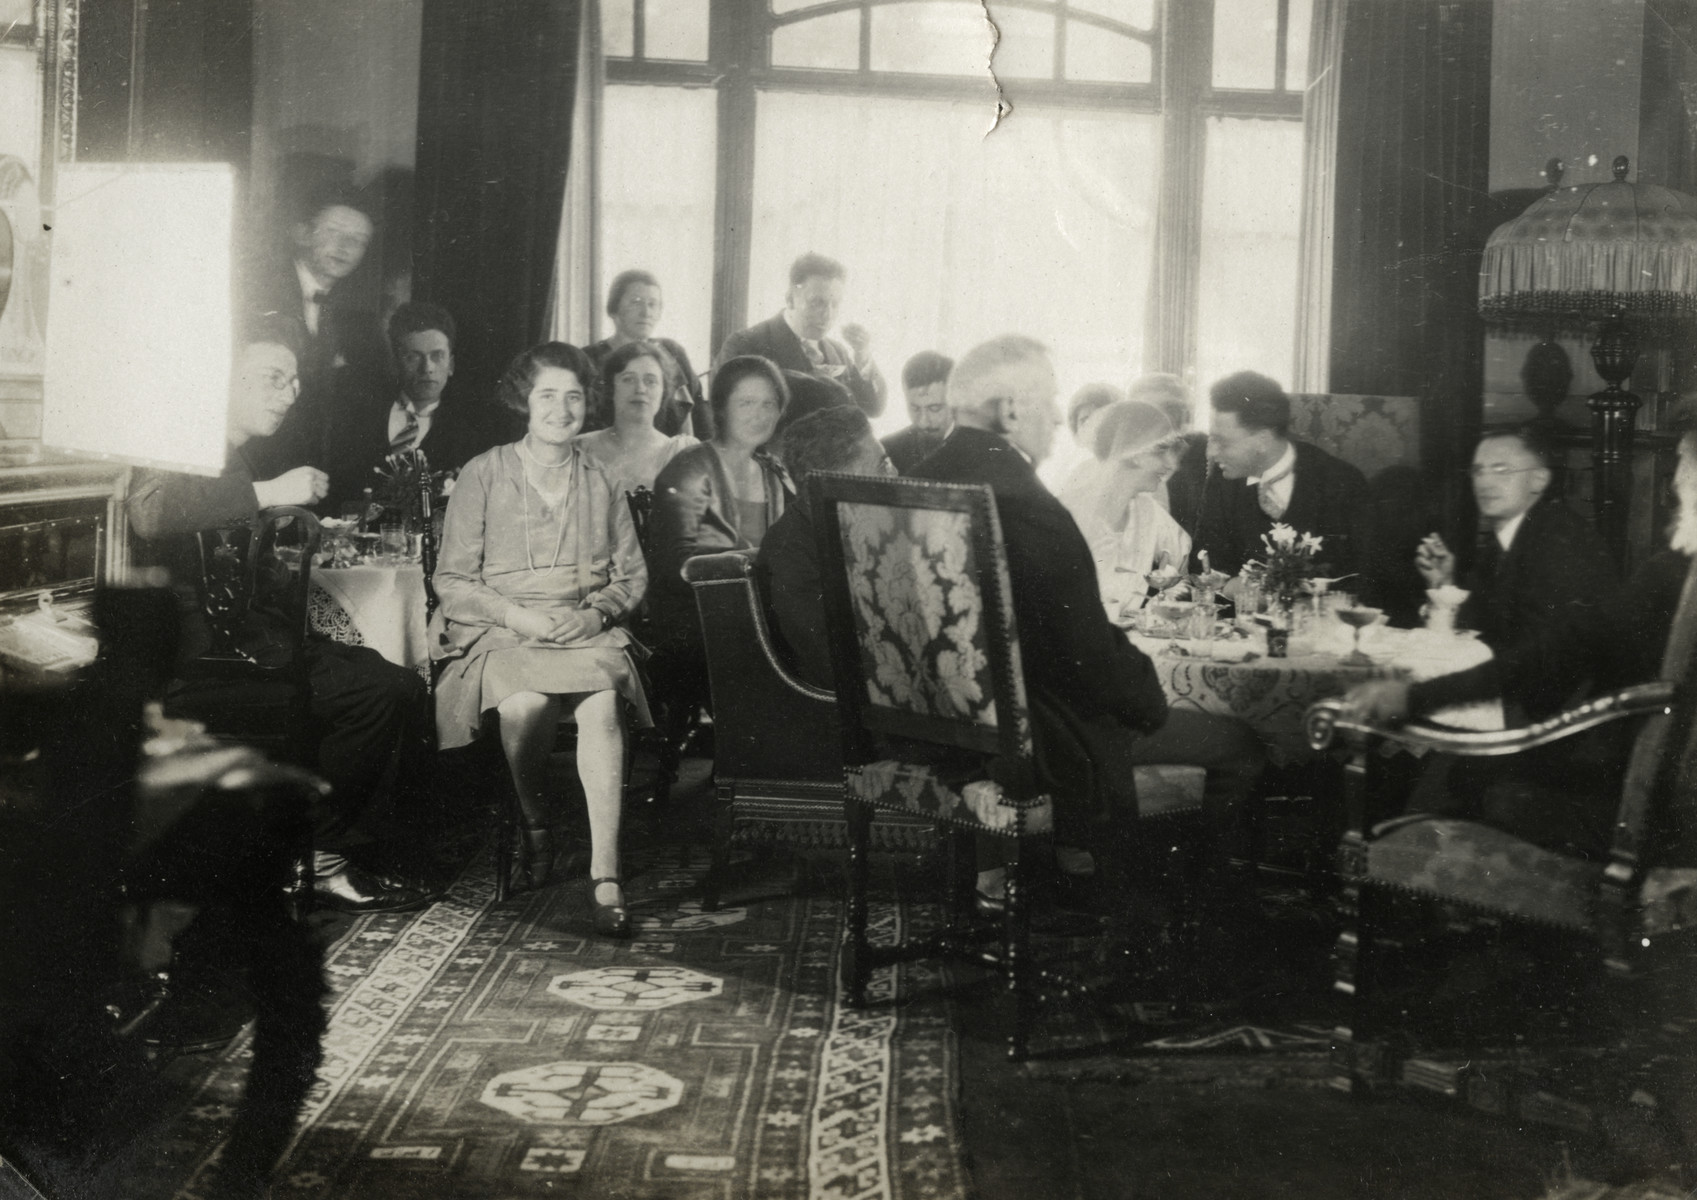 Wedding celebration of a Jewish couple in the Netherlands.  Pictured are the bride and groom, Else and Joseph Mossel; Joseph's brothers, Jacques and Aaron; Joseph's brother  and sister-in-law, Zadok and Annie Mossel;  and Else's father, Emanuelle Buchenbacher.  The celebration took place in the home of the donor's grandparents.